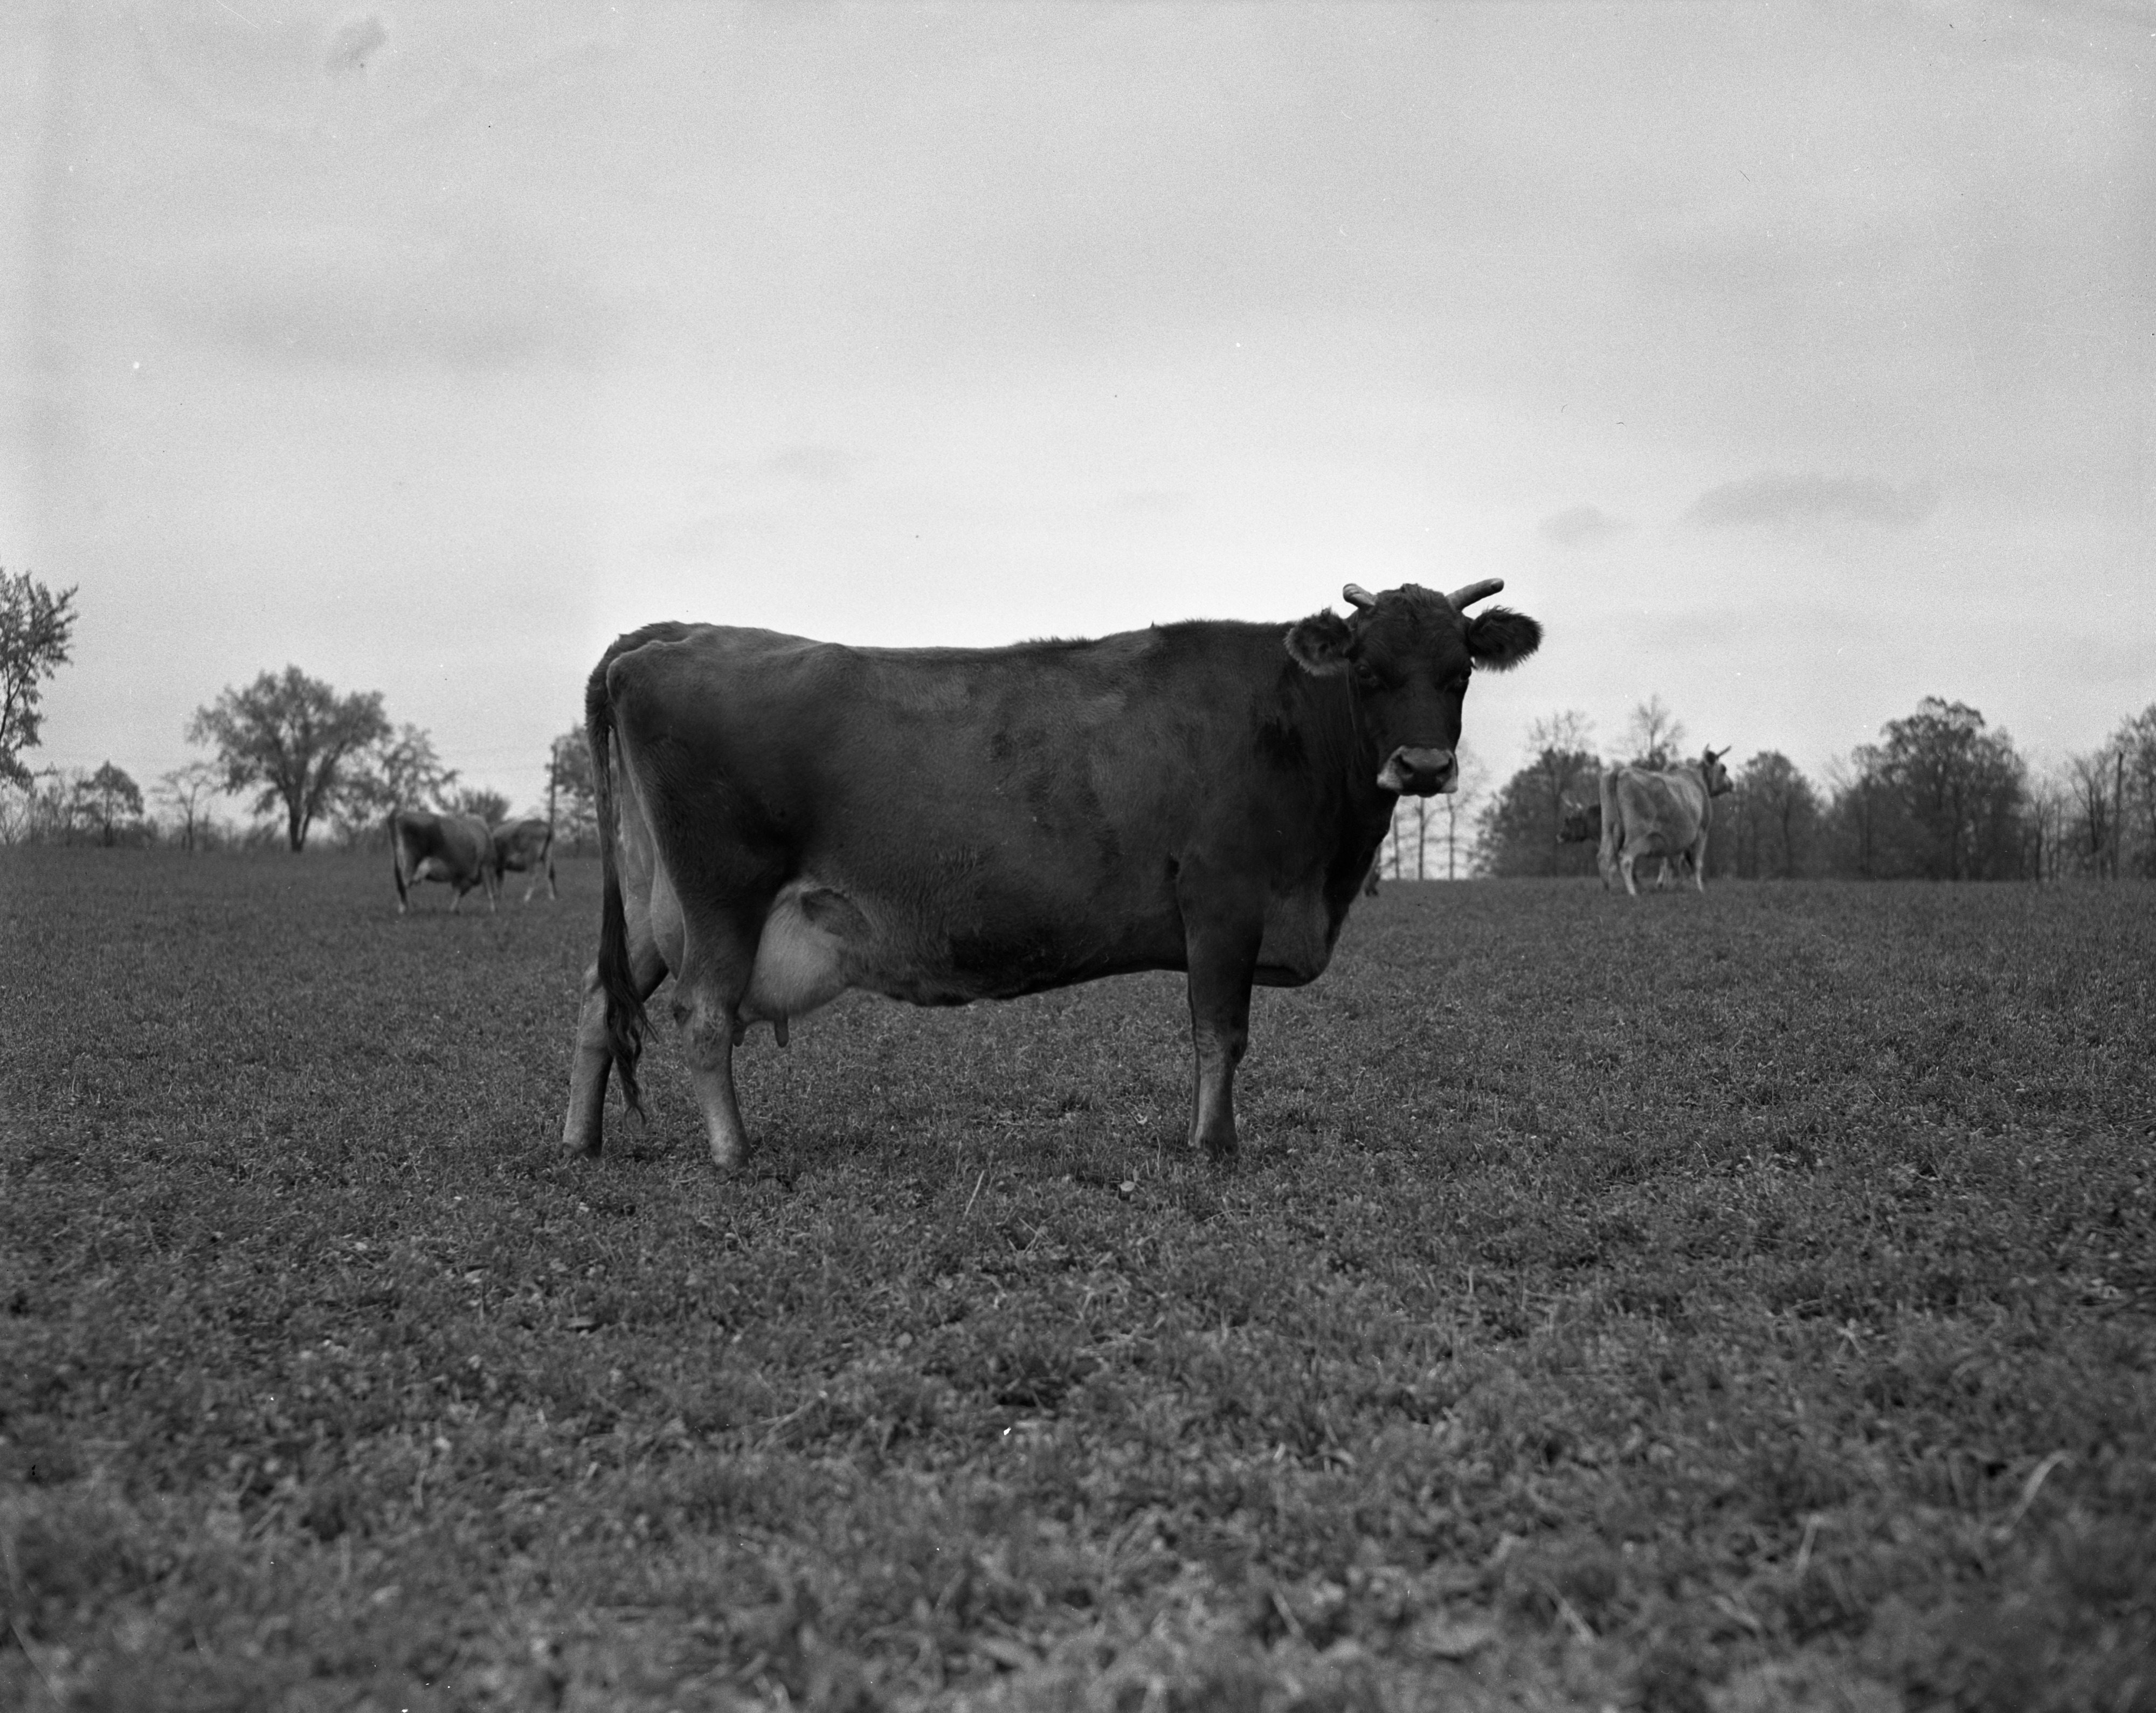 Ypsilanti Bell, Henry J. Oulmann's High-Producing Cow, November 1940 image